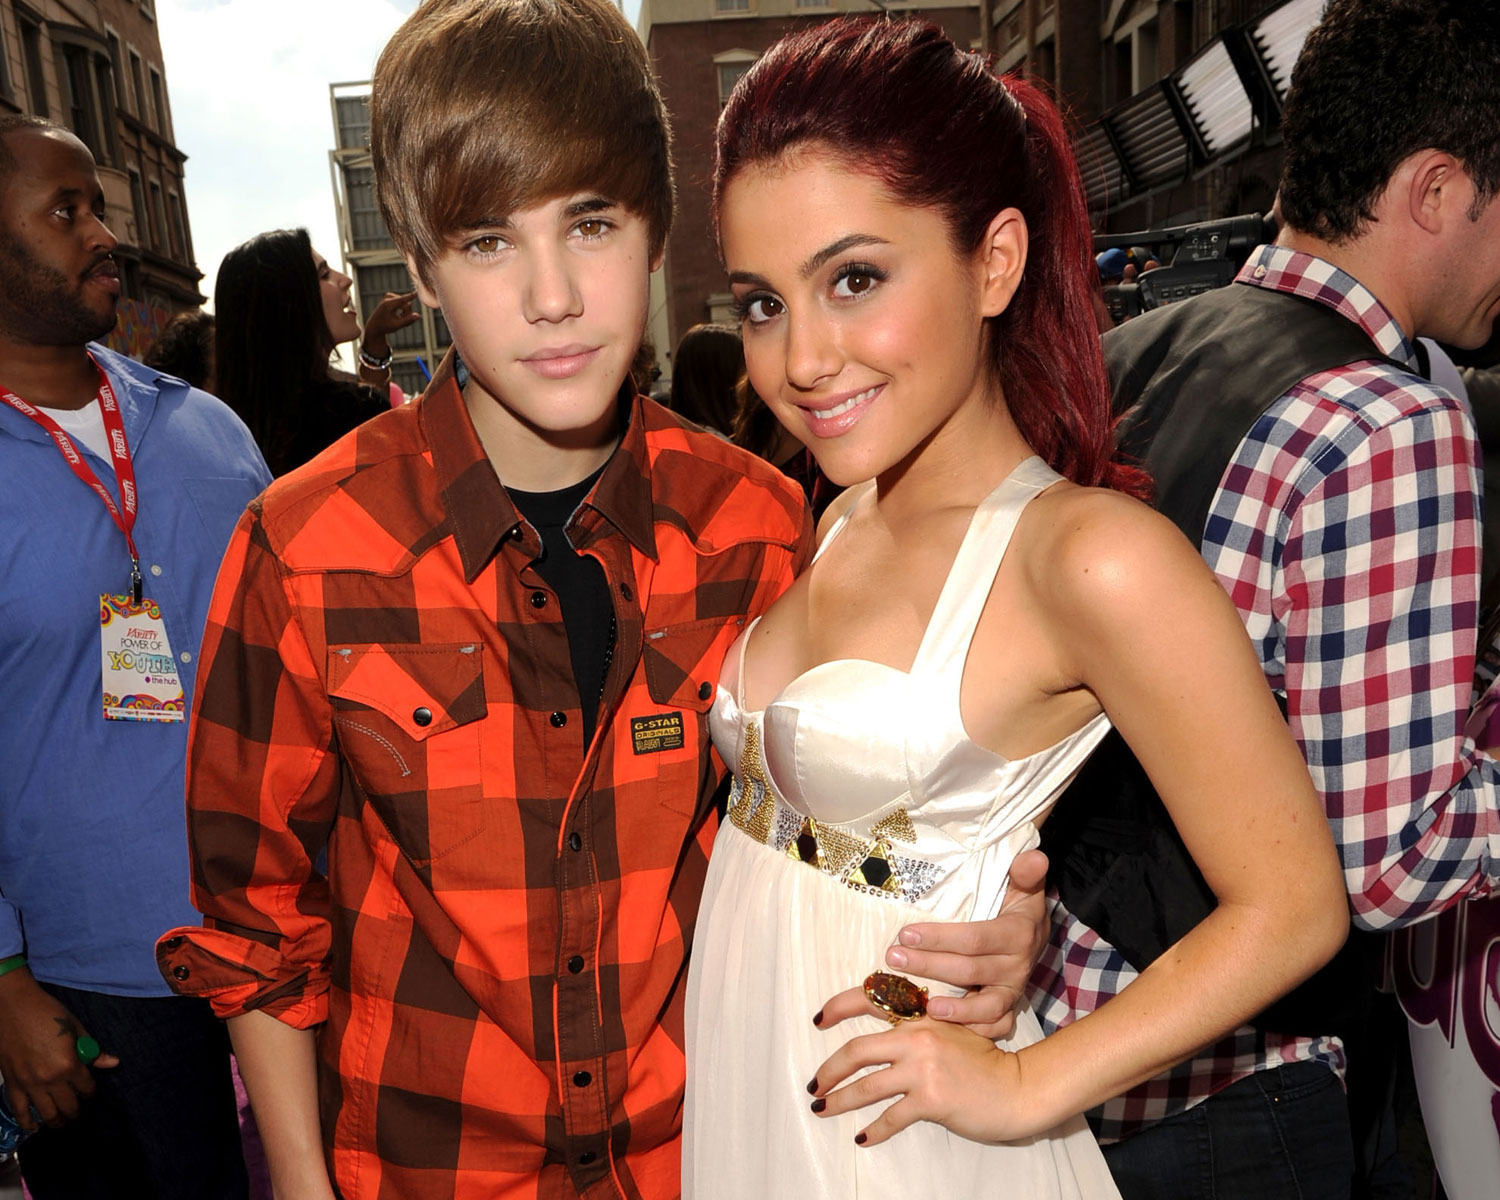 Ariana Grande Defends Her and Biebers Recent Engagements